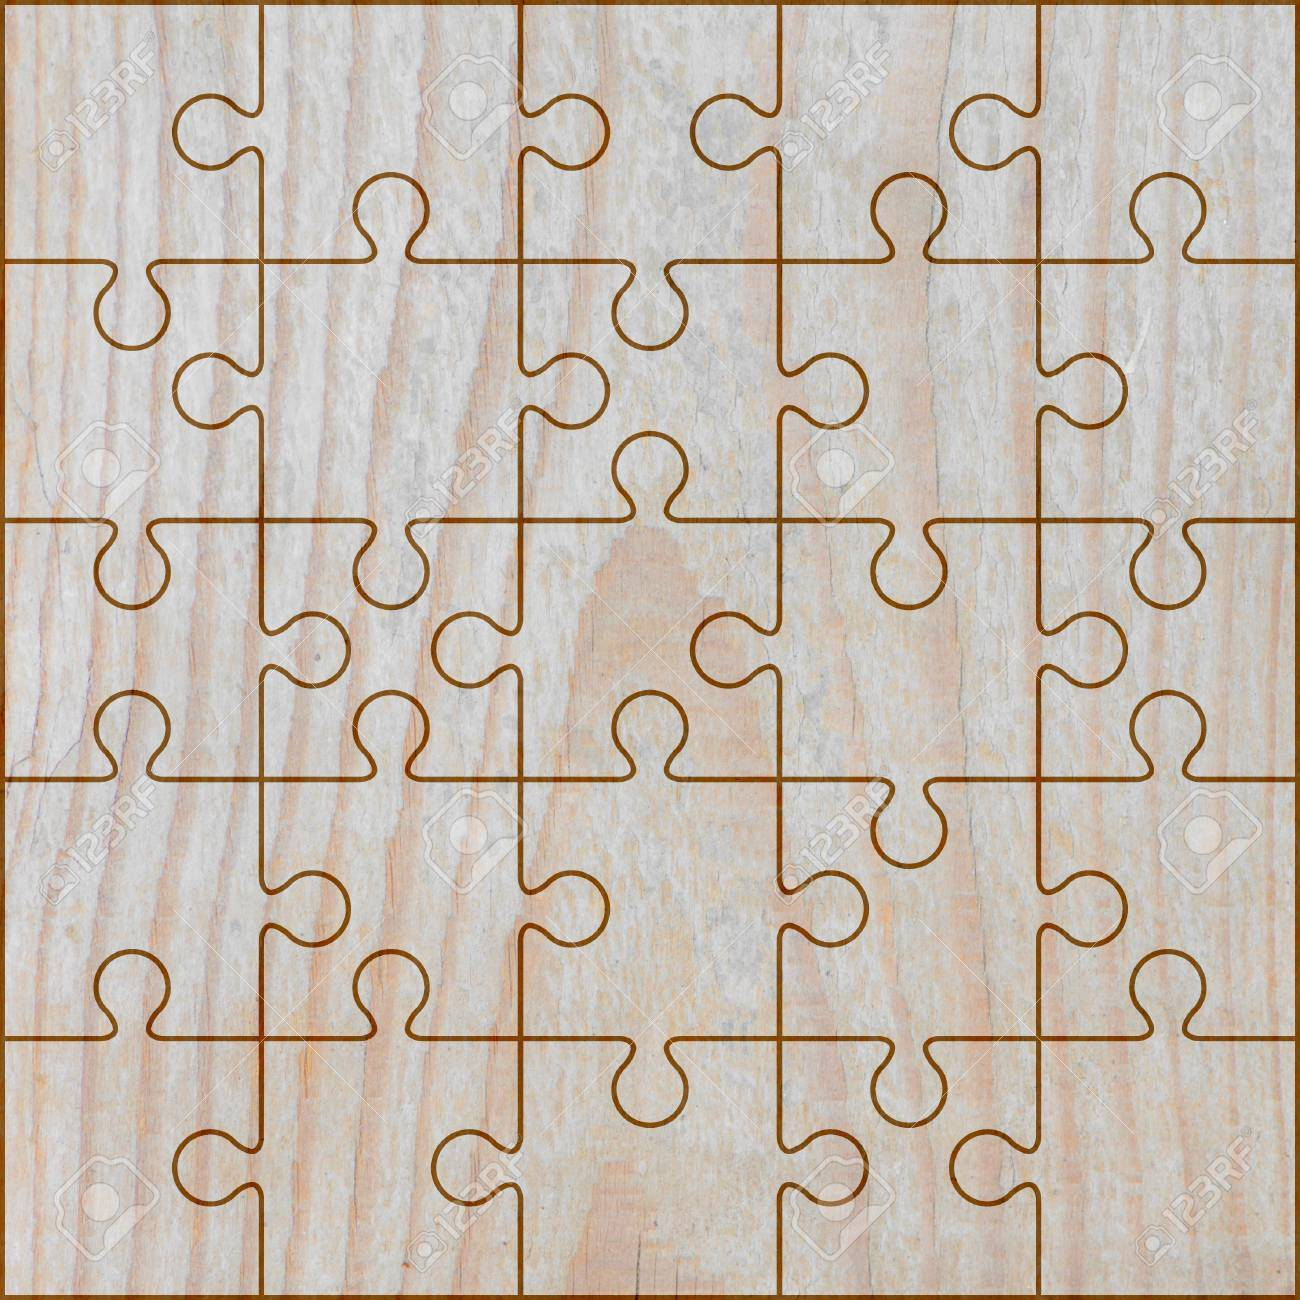 Jigsaw Puzzle Frame On Light Brown Wood Background. Stock Photo ...